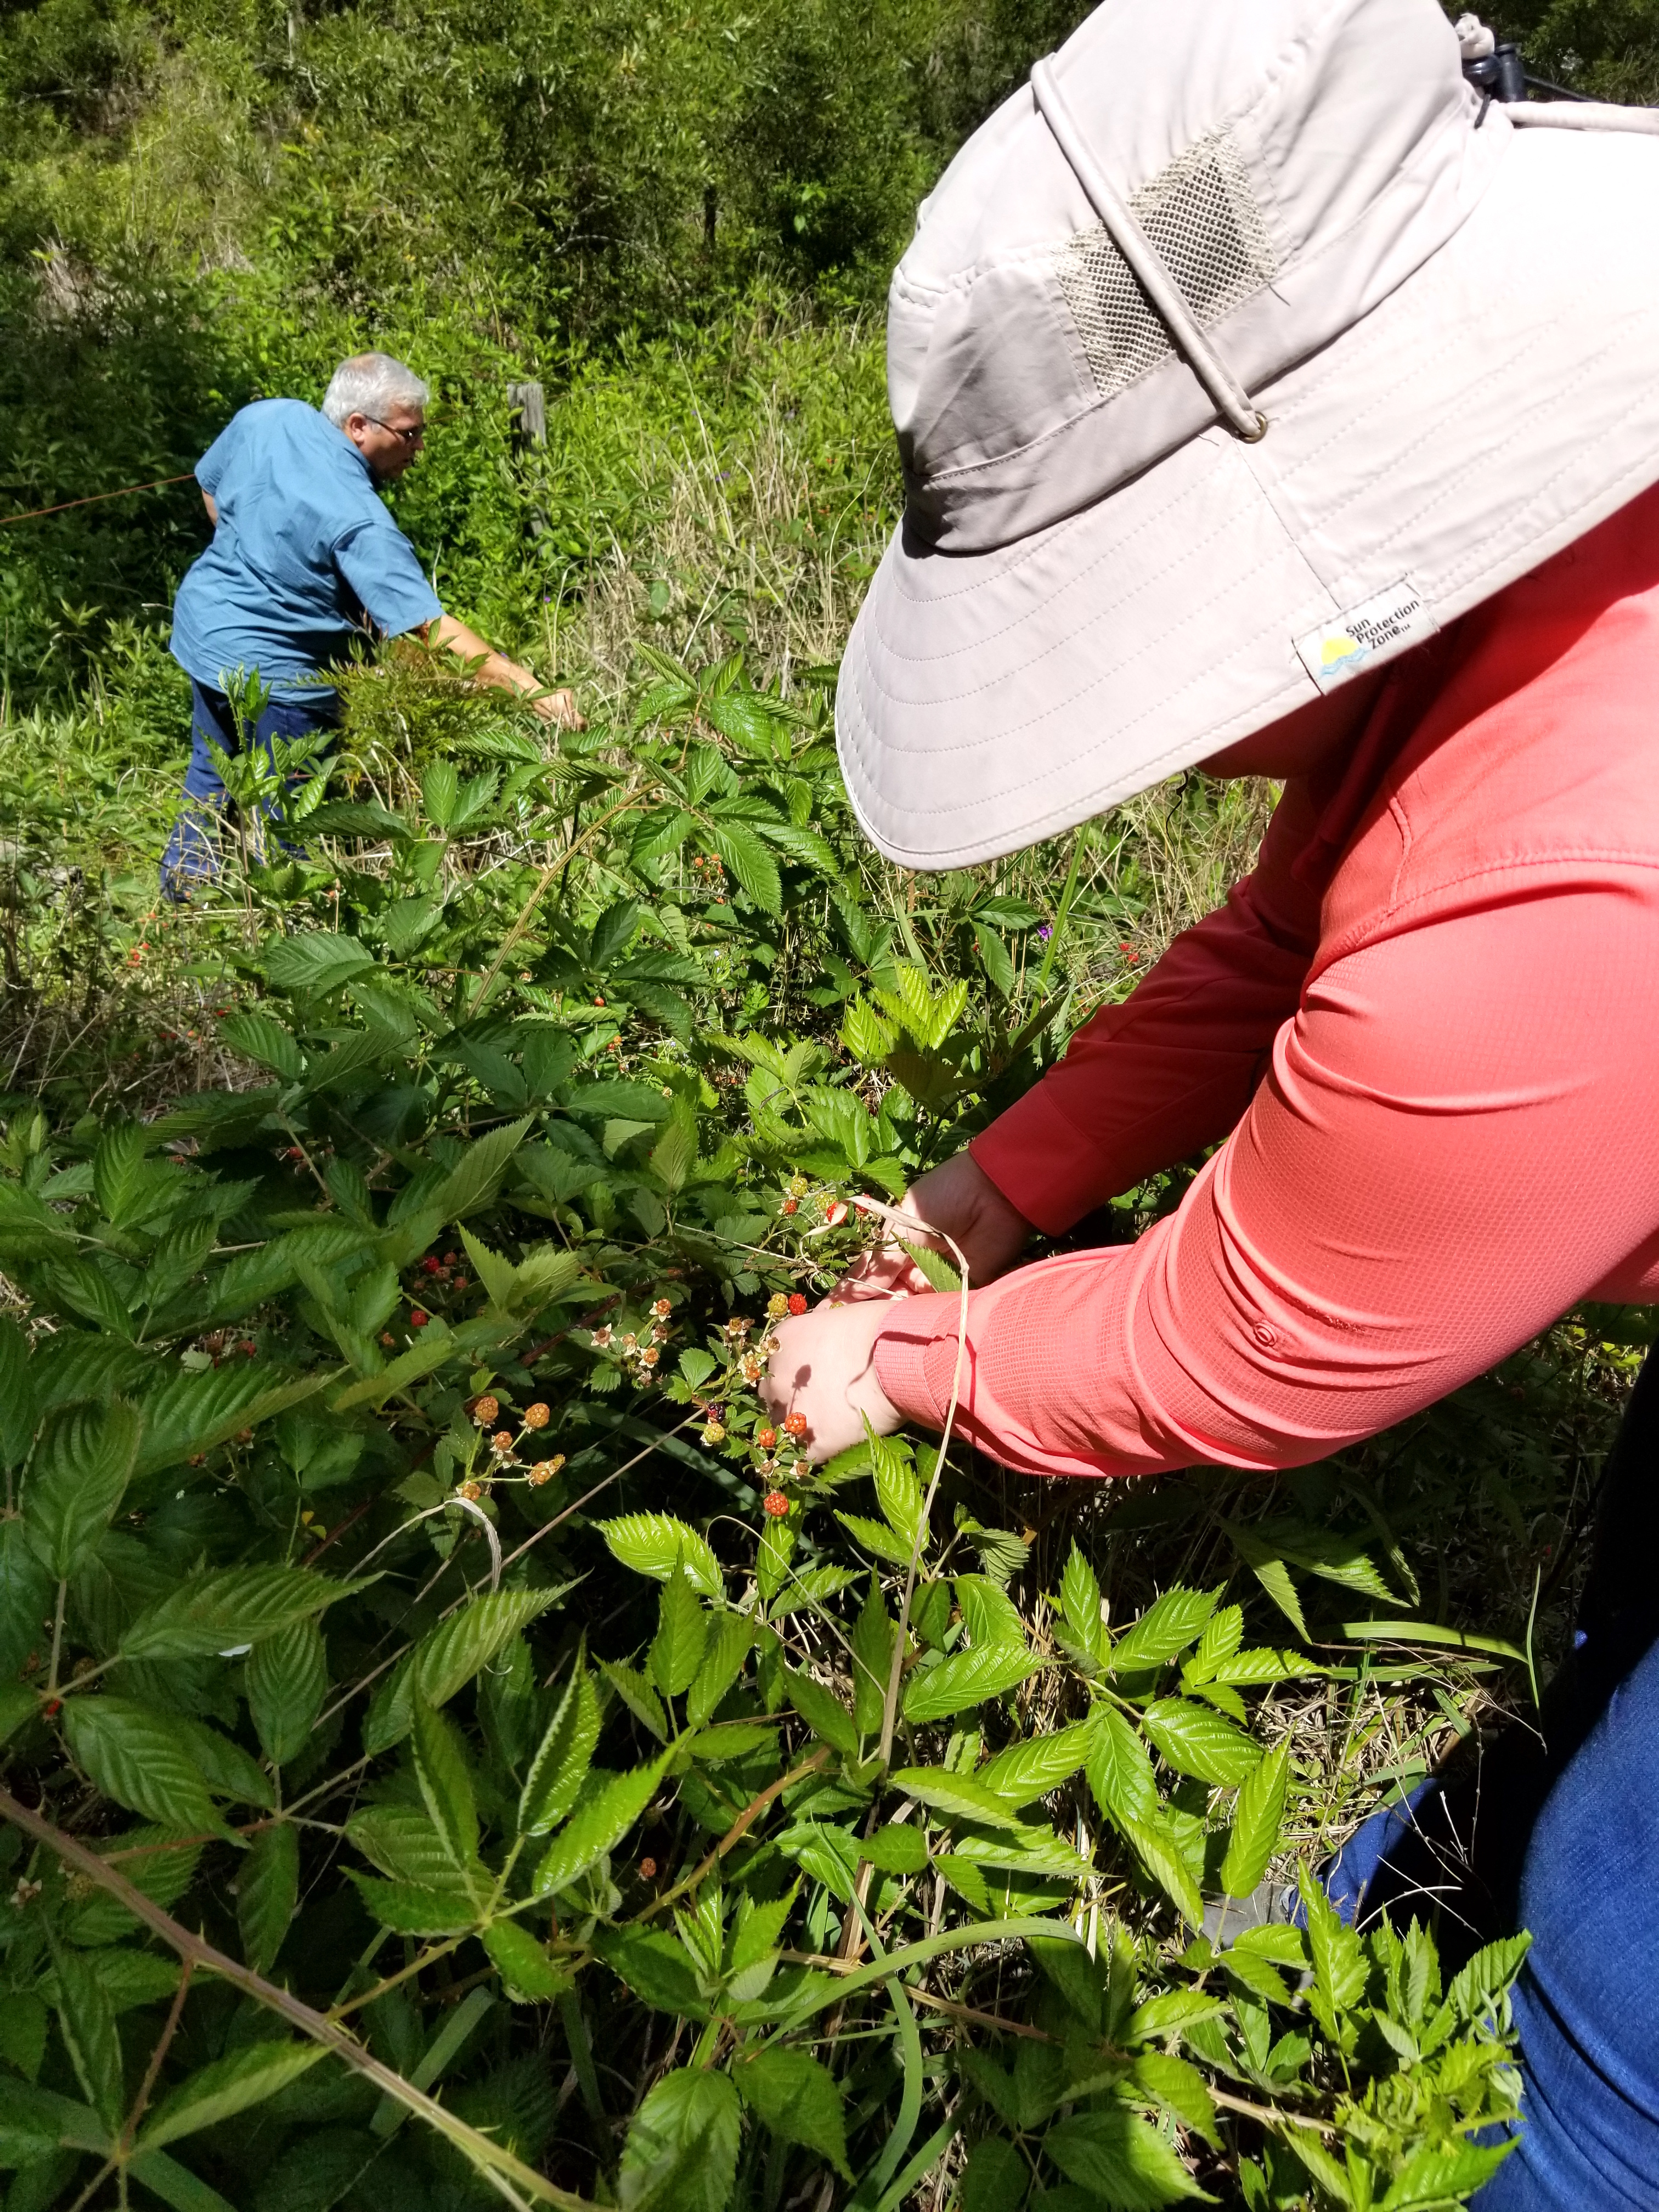 On a research trip to Australia, University of Georgia Horticulturist Rachel Itle collected about 100 seeds from each berry and a few hundred from each wild specimen. She brought a total of 16 Rubus specimens back to the UGA campus in Griffin, Georgia. She hopes to cross the plants that grow from these berries with common raspberry varieties grown in the U.S. to create varieties that can be grown by Georgia farmers.